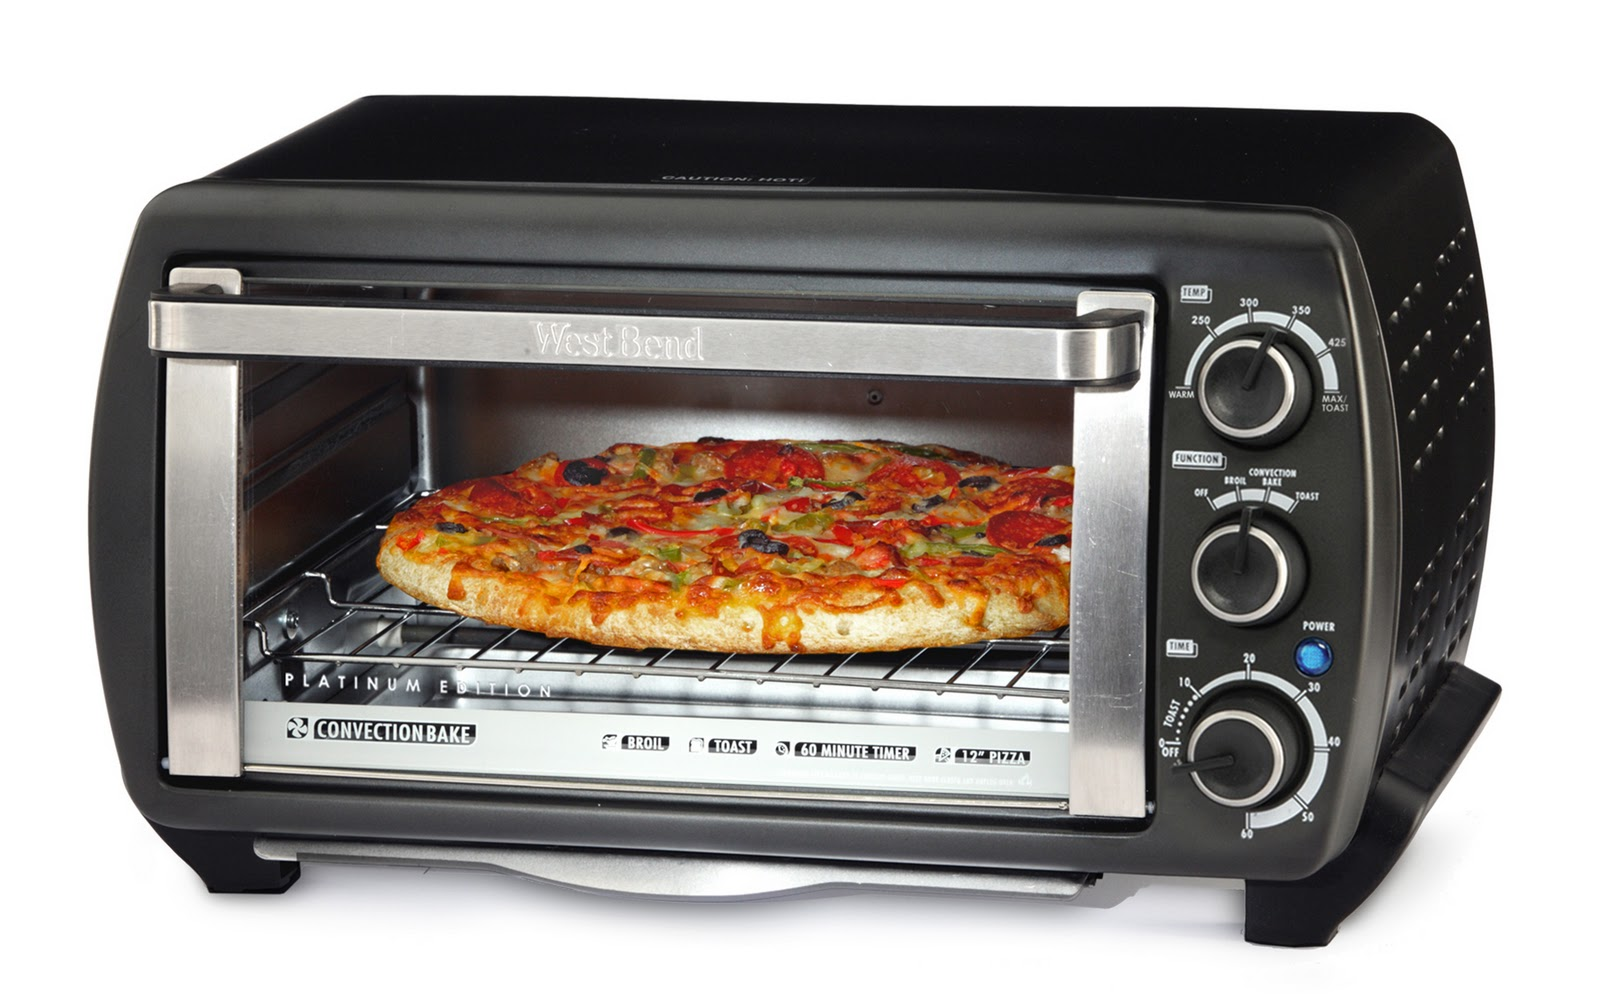 Countertop Oven Toaster : Burp!: High End Appetizers: Right from your toaster oven